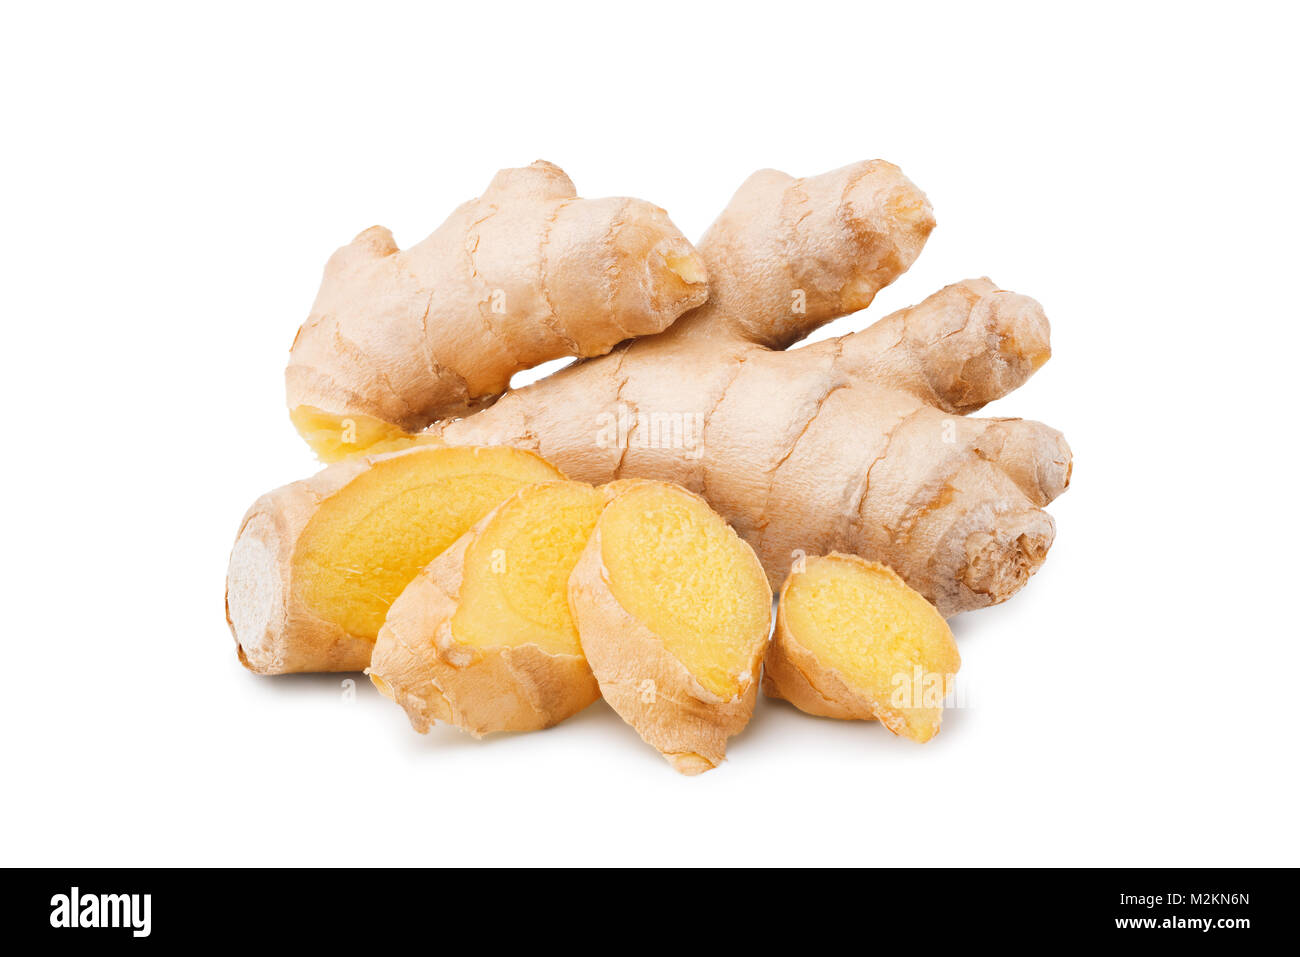 Ginger root with slices isolated on white - Stock Image